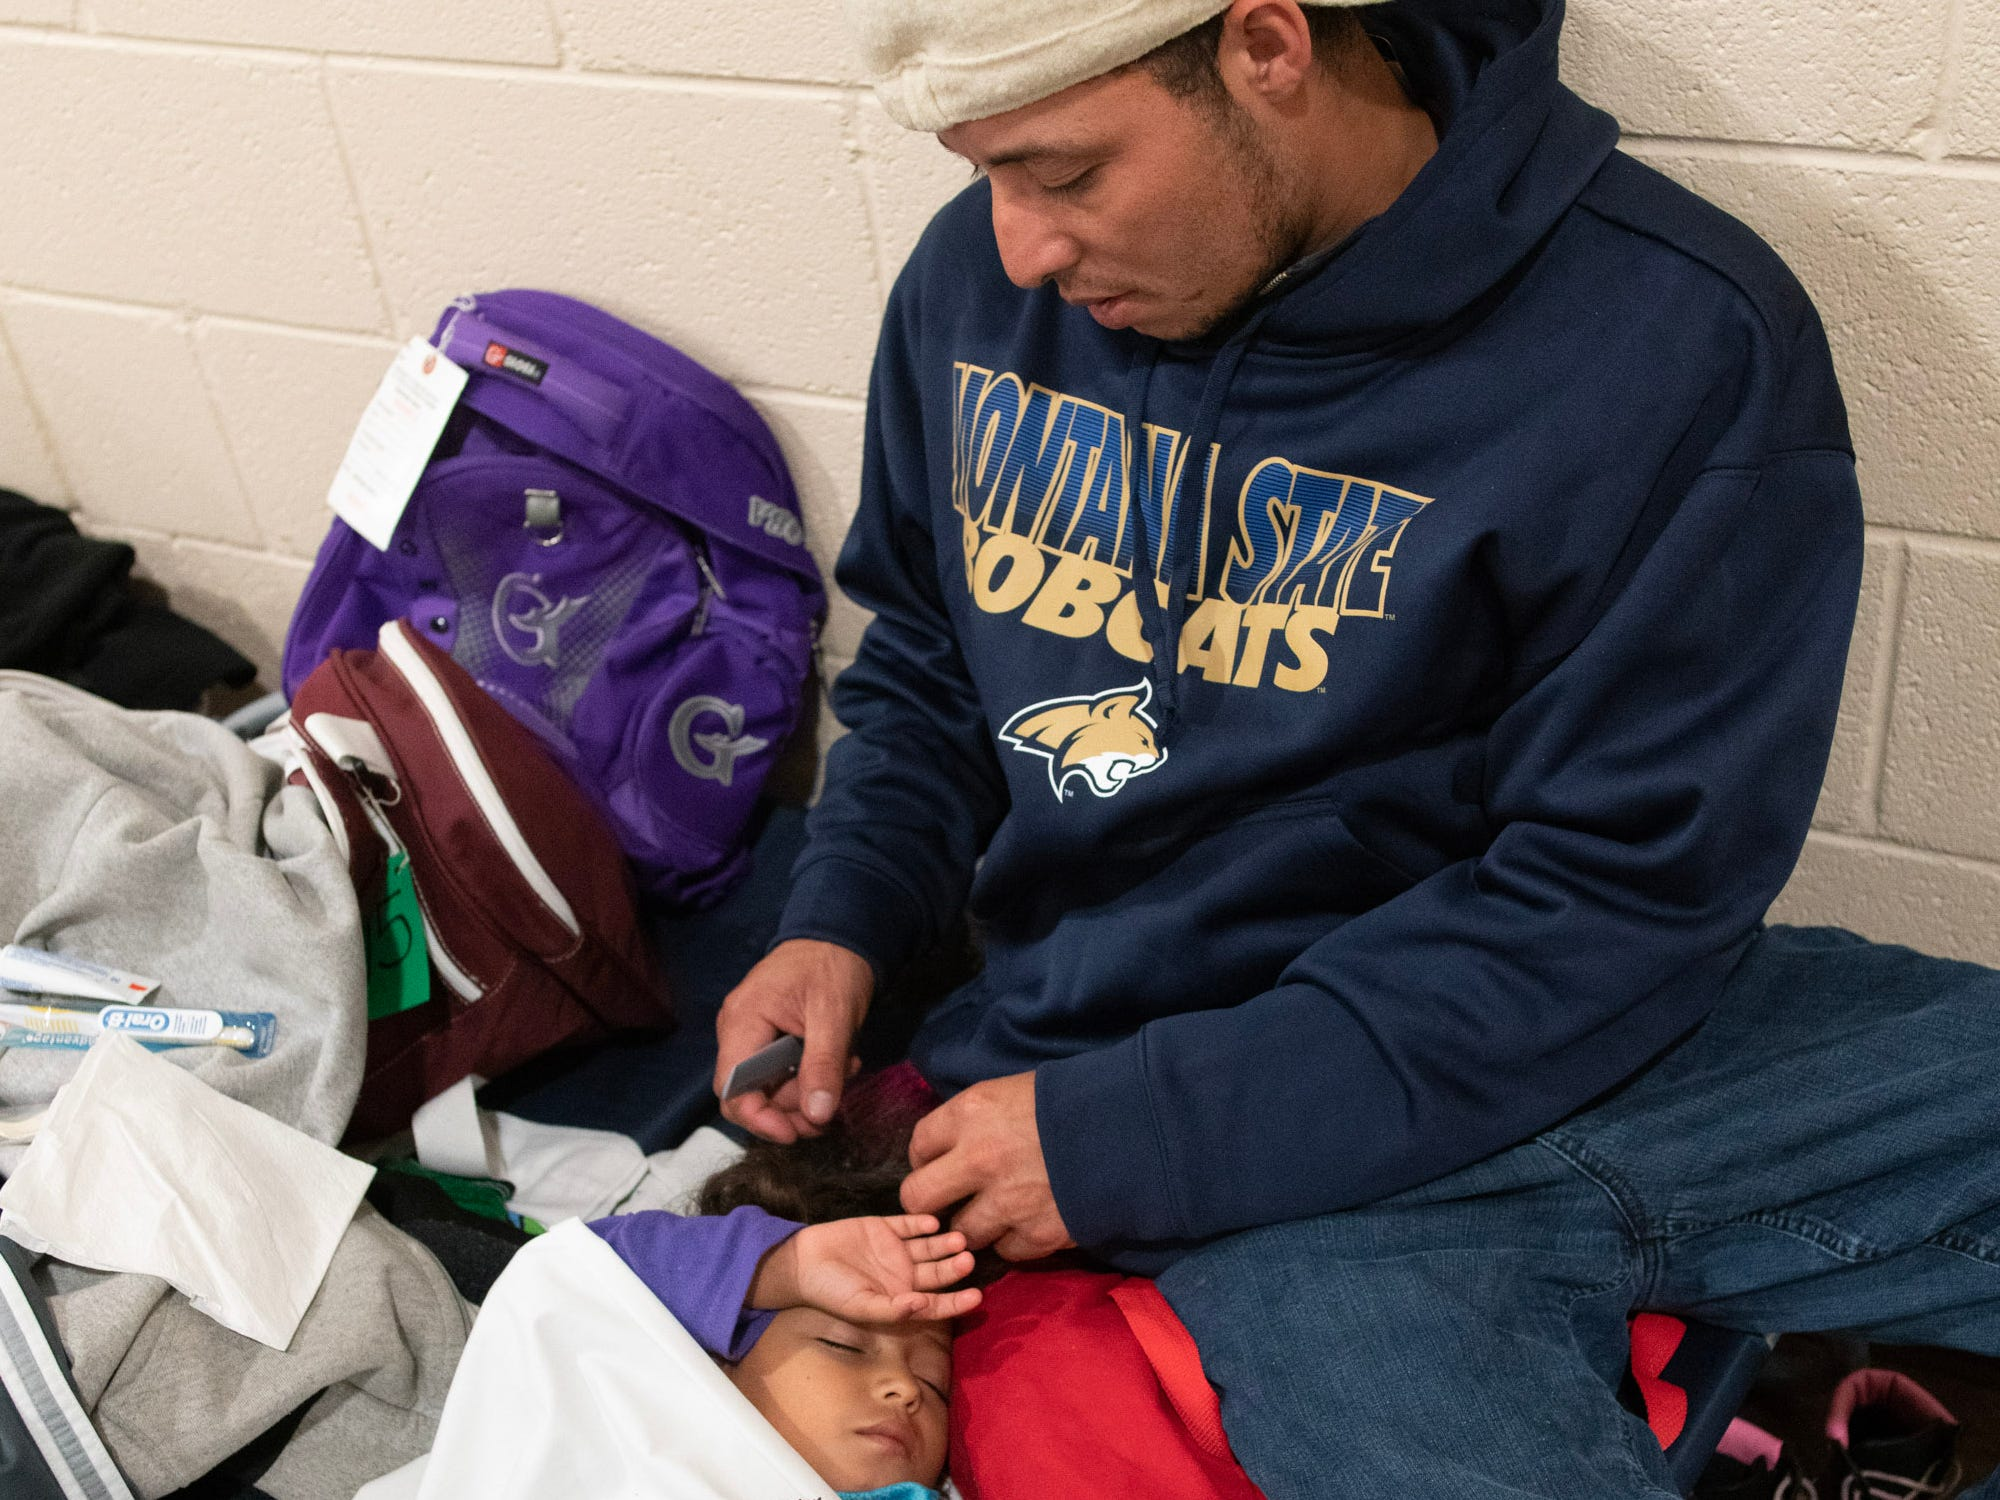 Eduwin Nisama combs his 3-year-old daughter Adriana's hair while she sleeps at a migrant shelter in Doña Ana County.